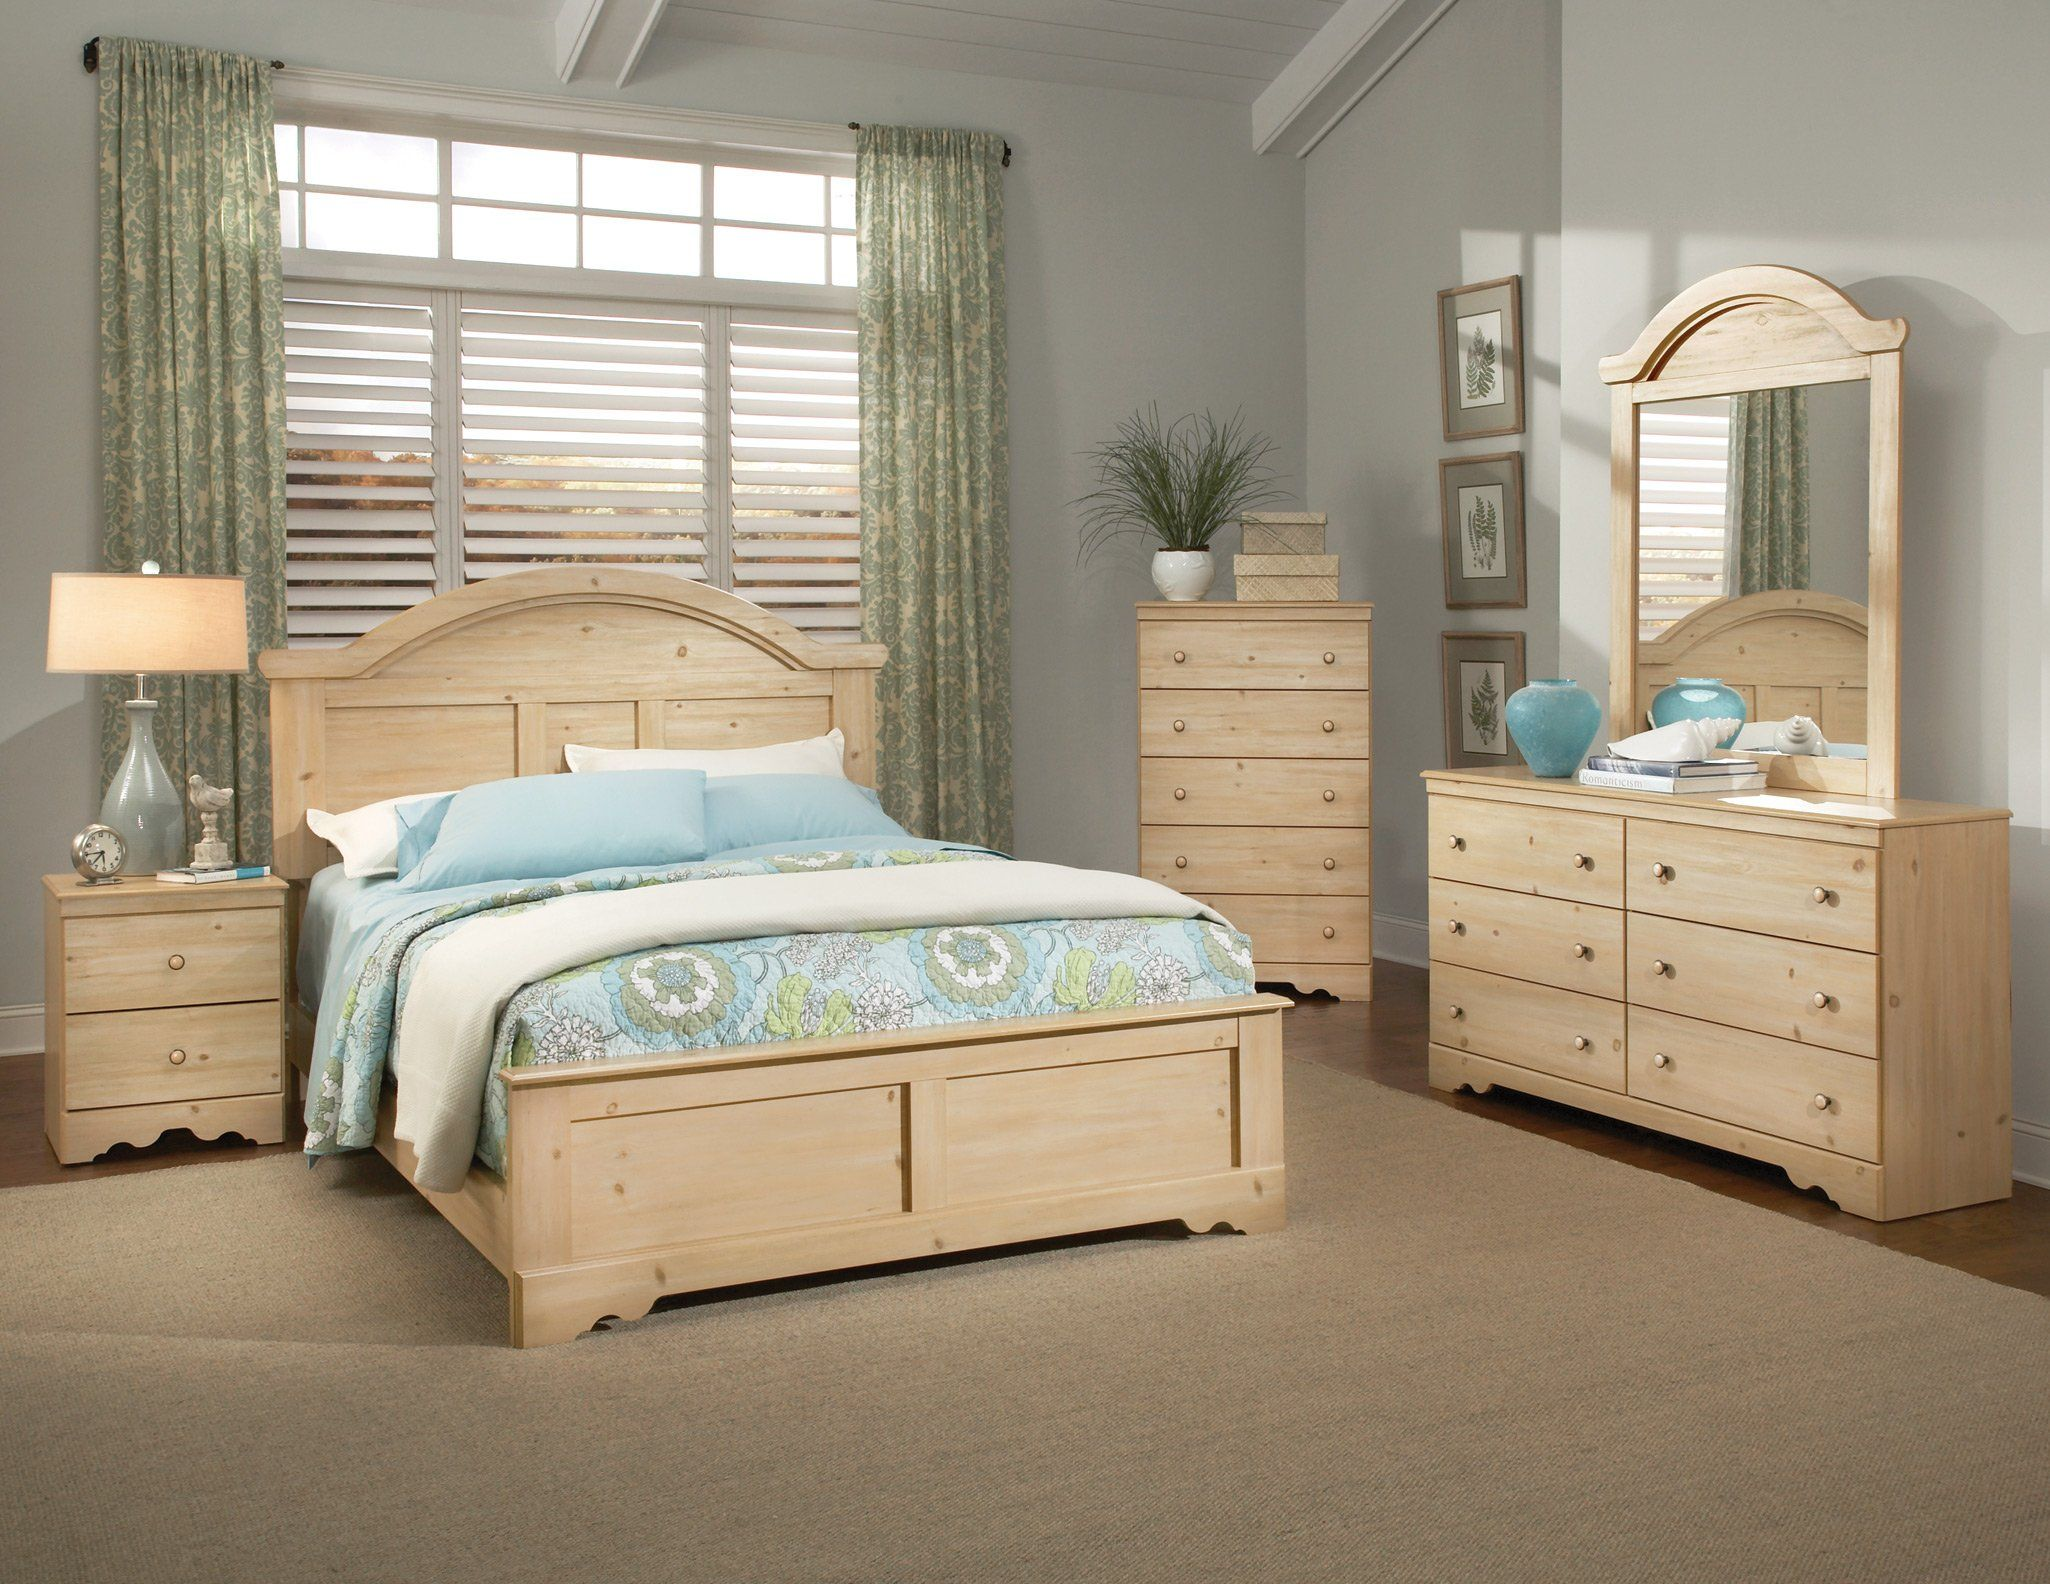 Awesome Cream Painted Oak Bedroom Furniture | UV Furniture